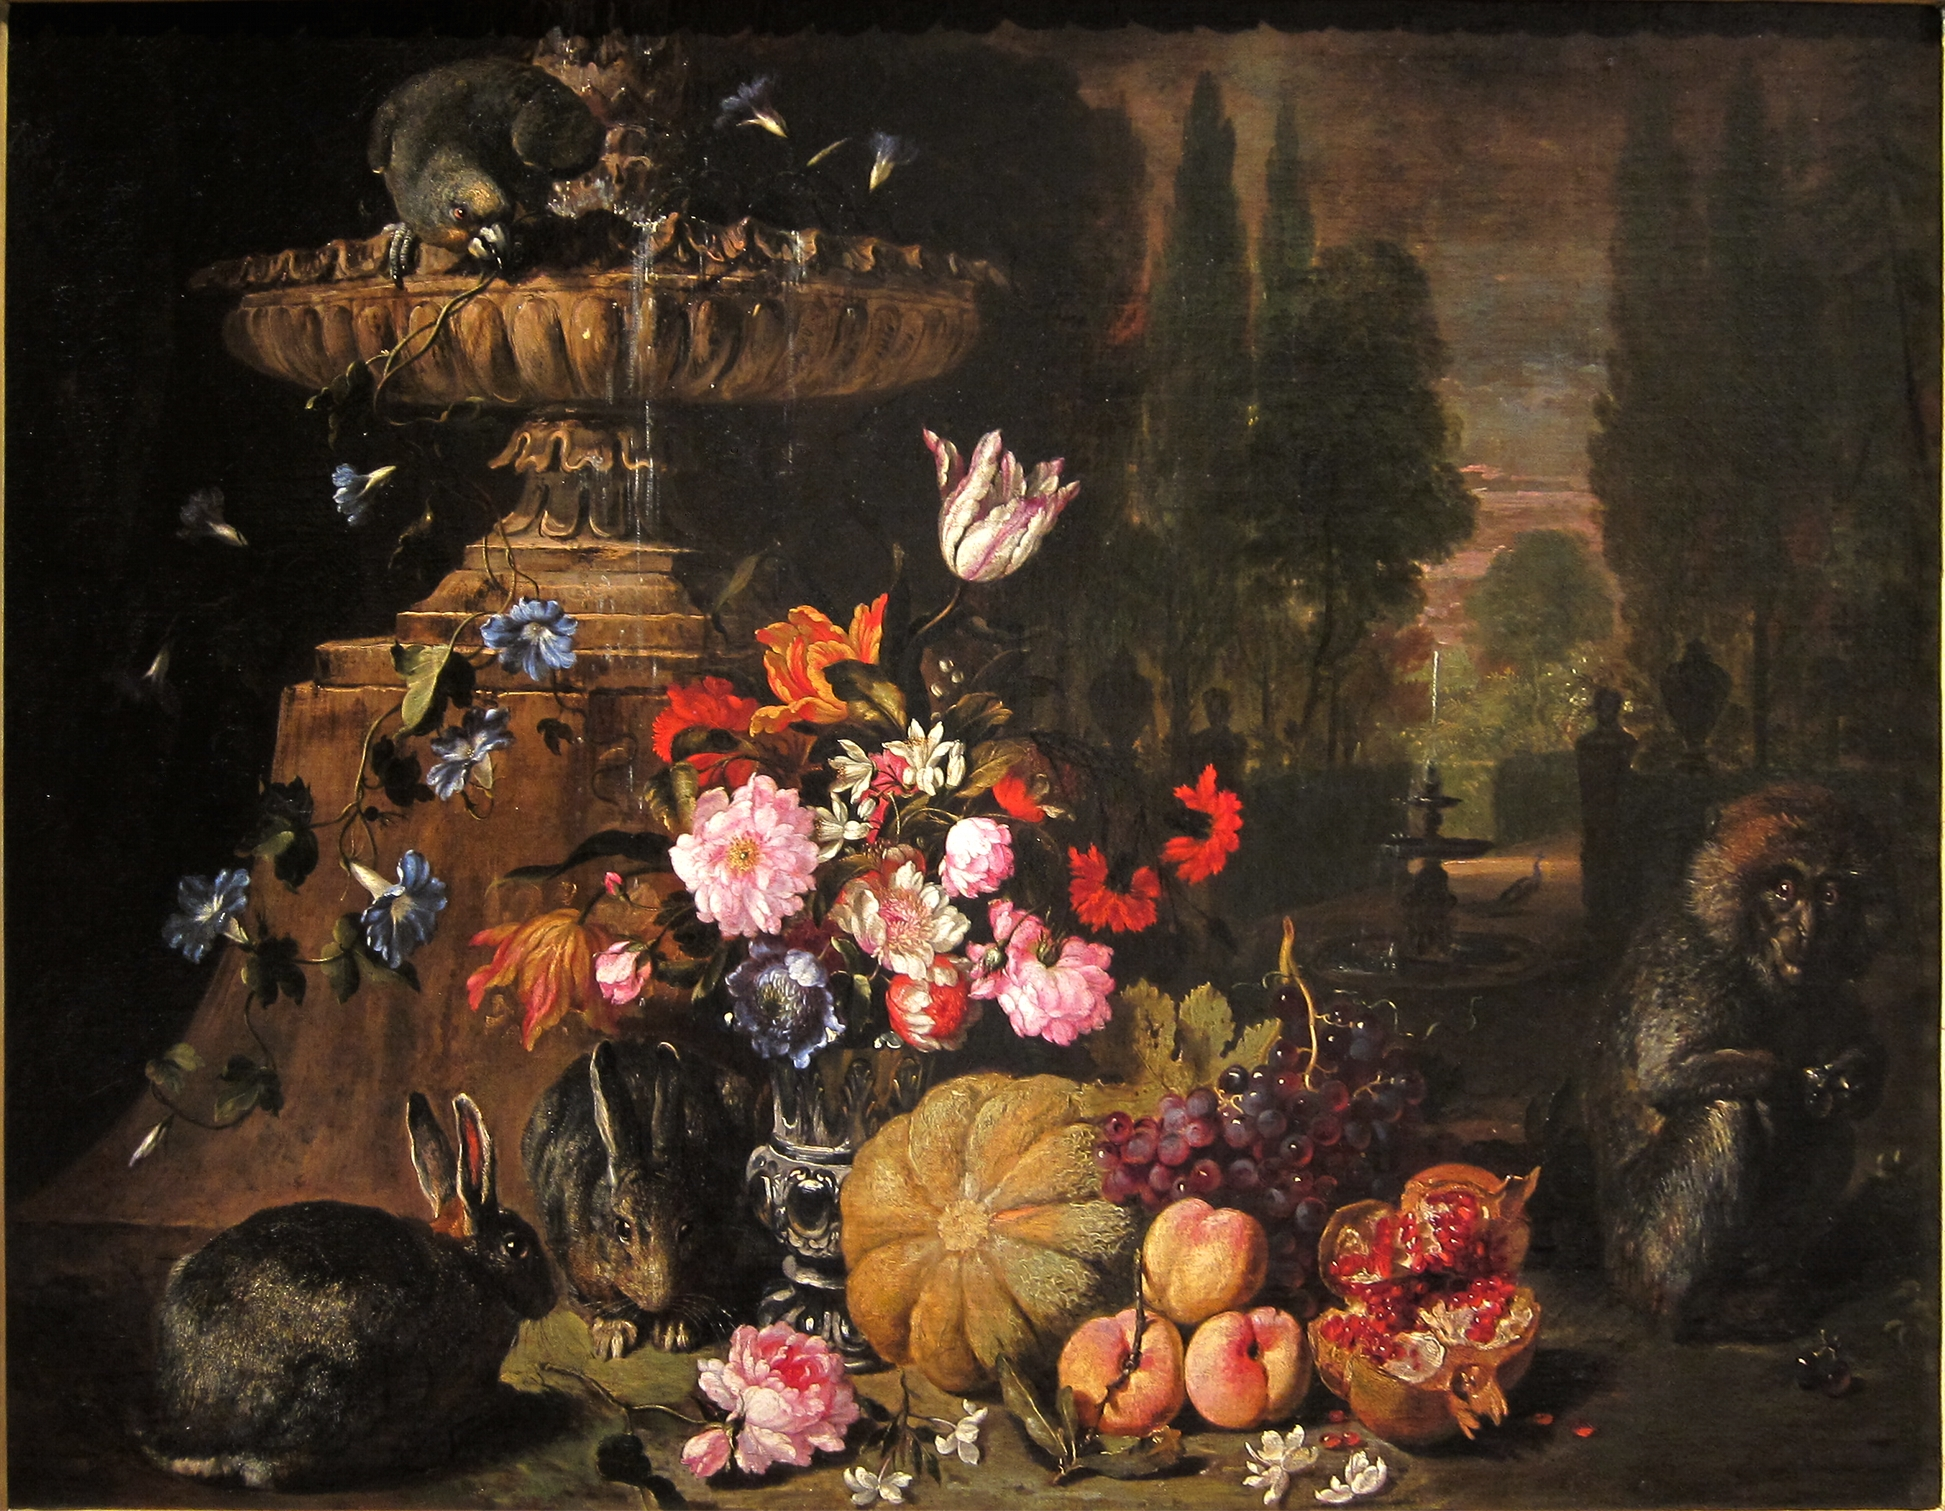 Still Life of Fruits and Flowers with Animals, David de Coninck (ca. 1644-after 1701)